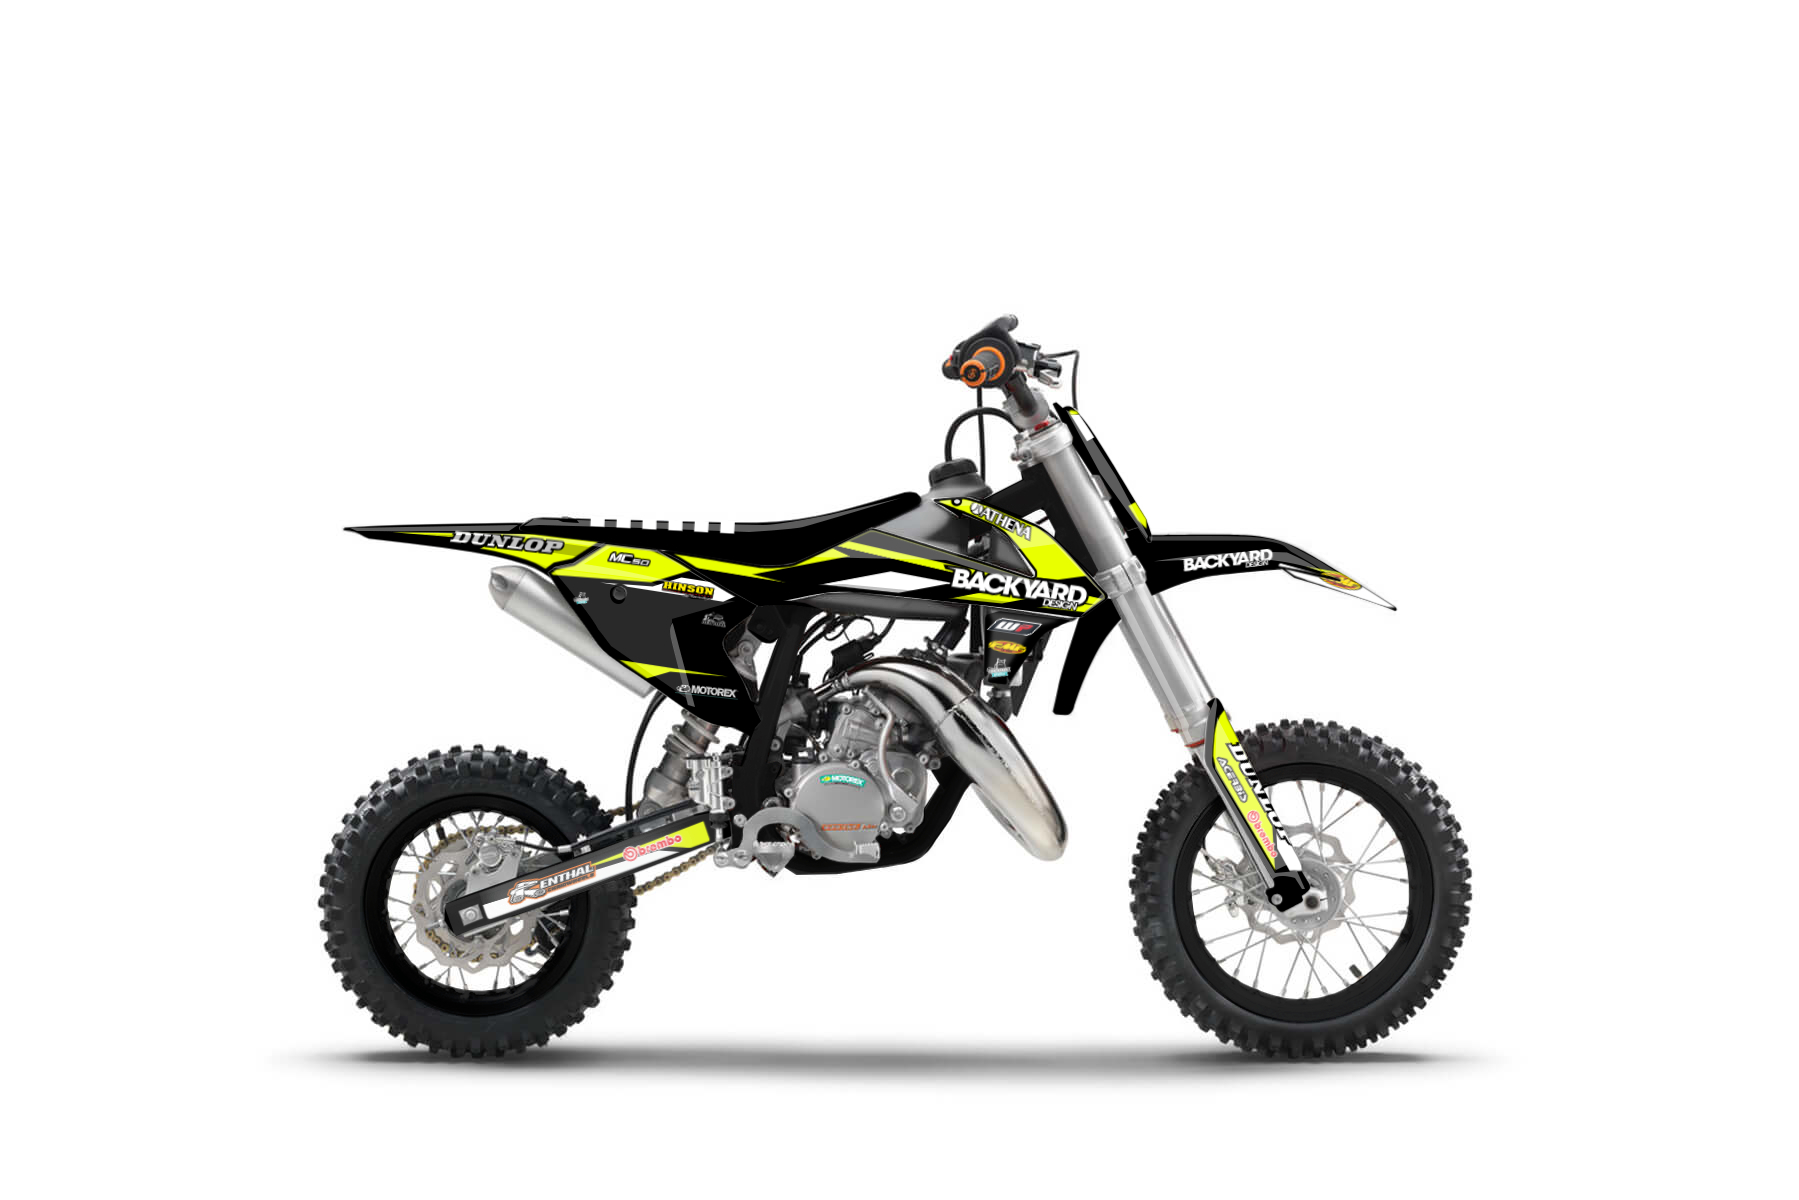 GasGas MC50 MX Graphic Kits  The MC 50 is the perfect bike to start getting into mx at a young age. It is easy to handle and powerful enough to guarantee lots of fun on the track.